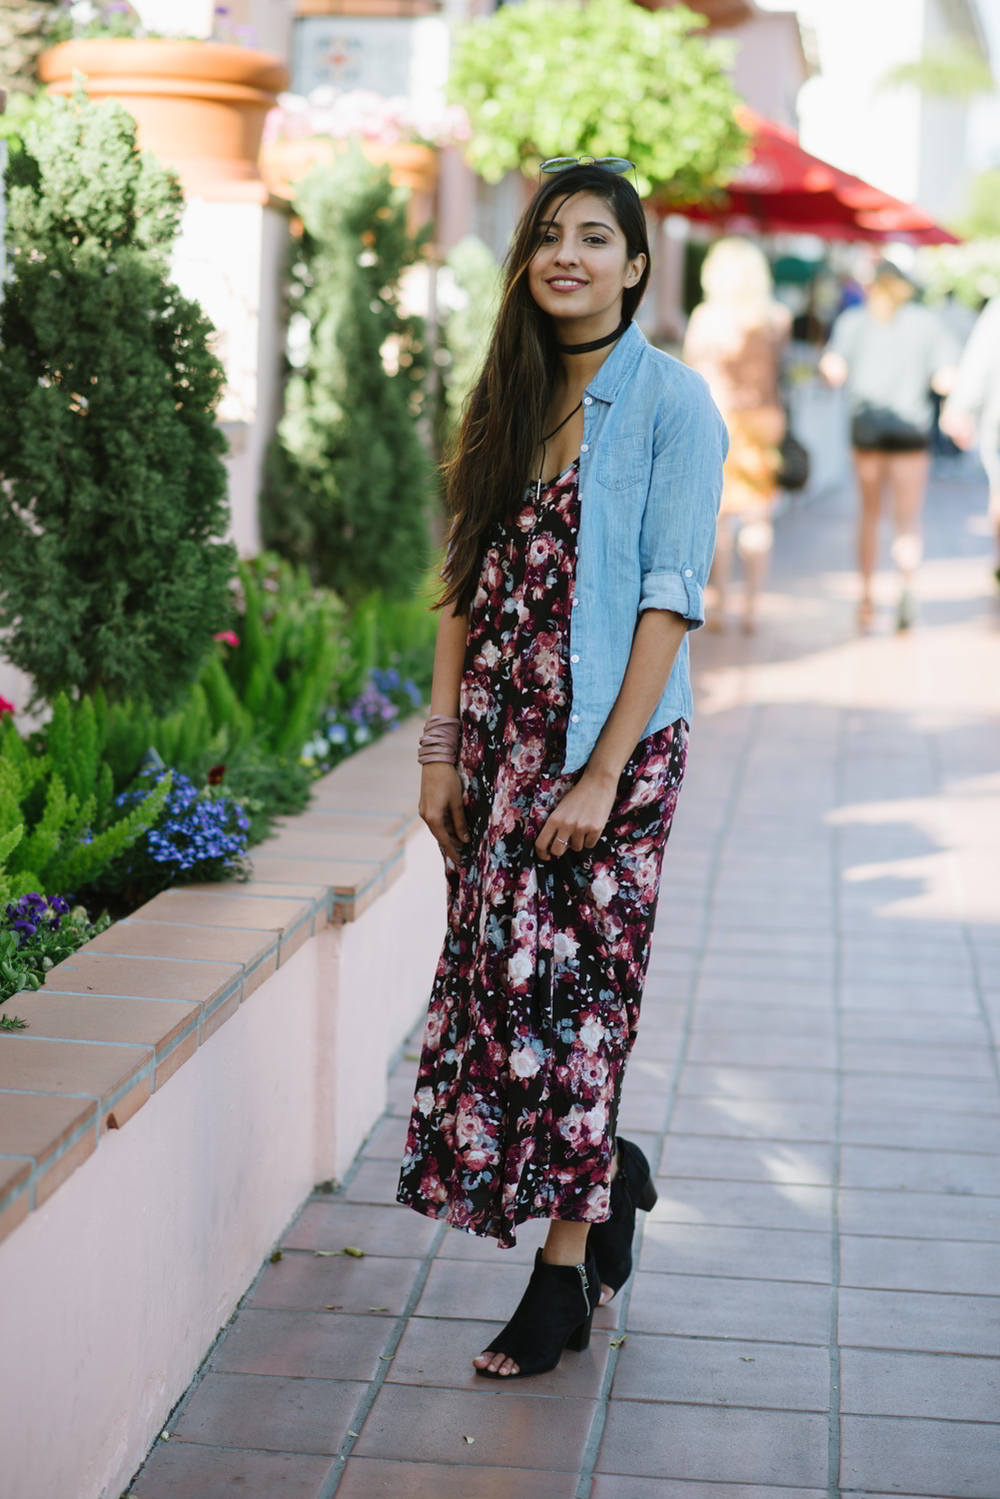 blogger-style-floral-maxi-dress-chambray-shirt